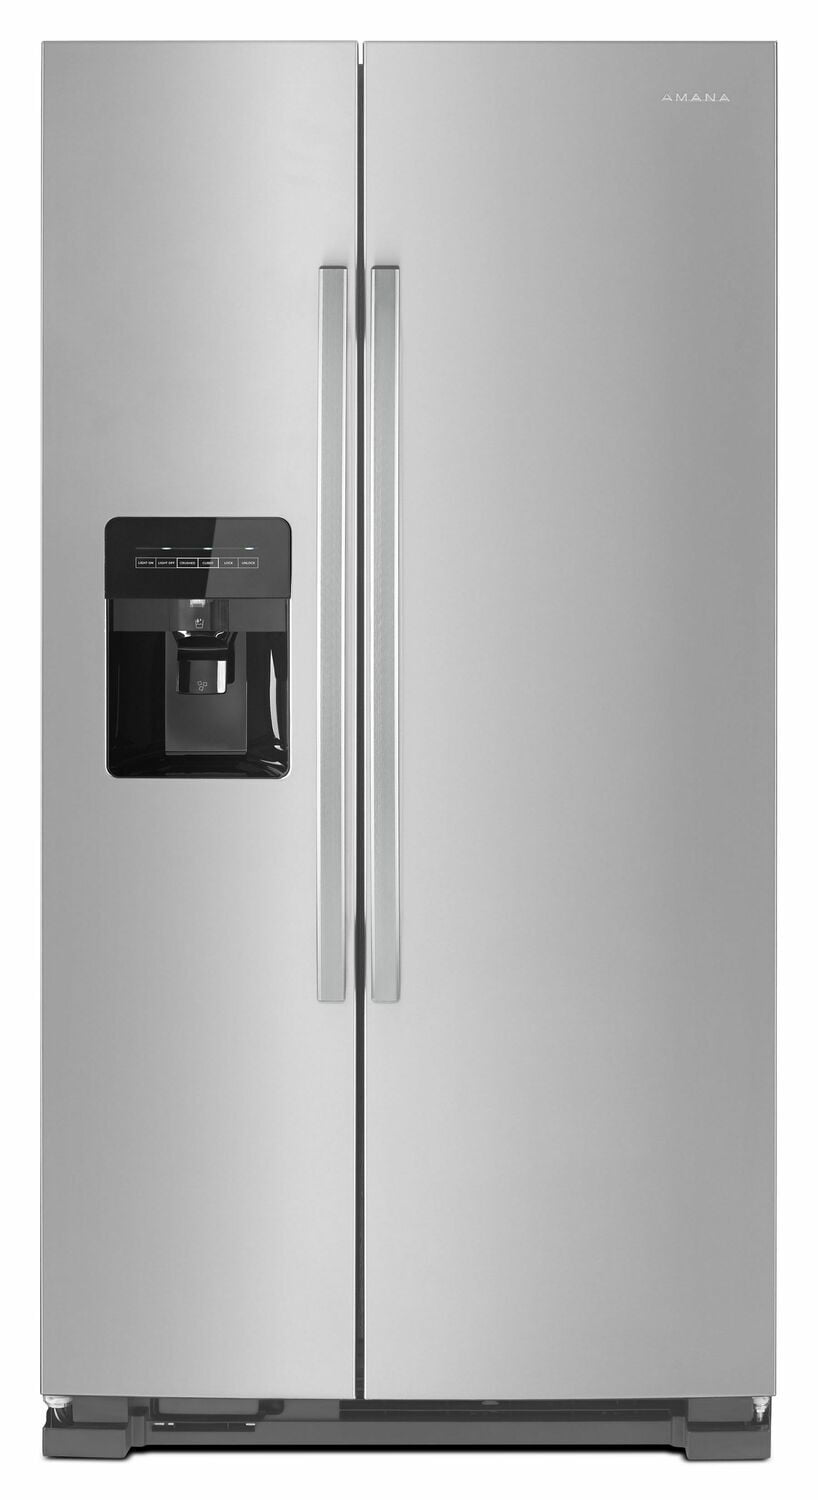 Load image into Gallery viewer, Amana ASI2175GRS 33-Inch Side-By-Side Refrigerator With Dual Pad External Ice And Water Dispenser - Black-On-Stainless